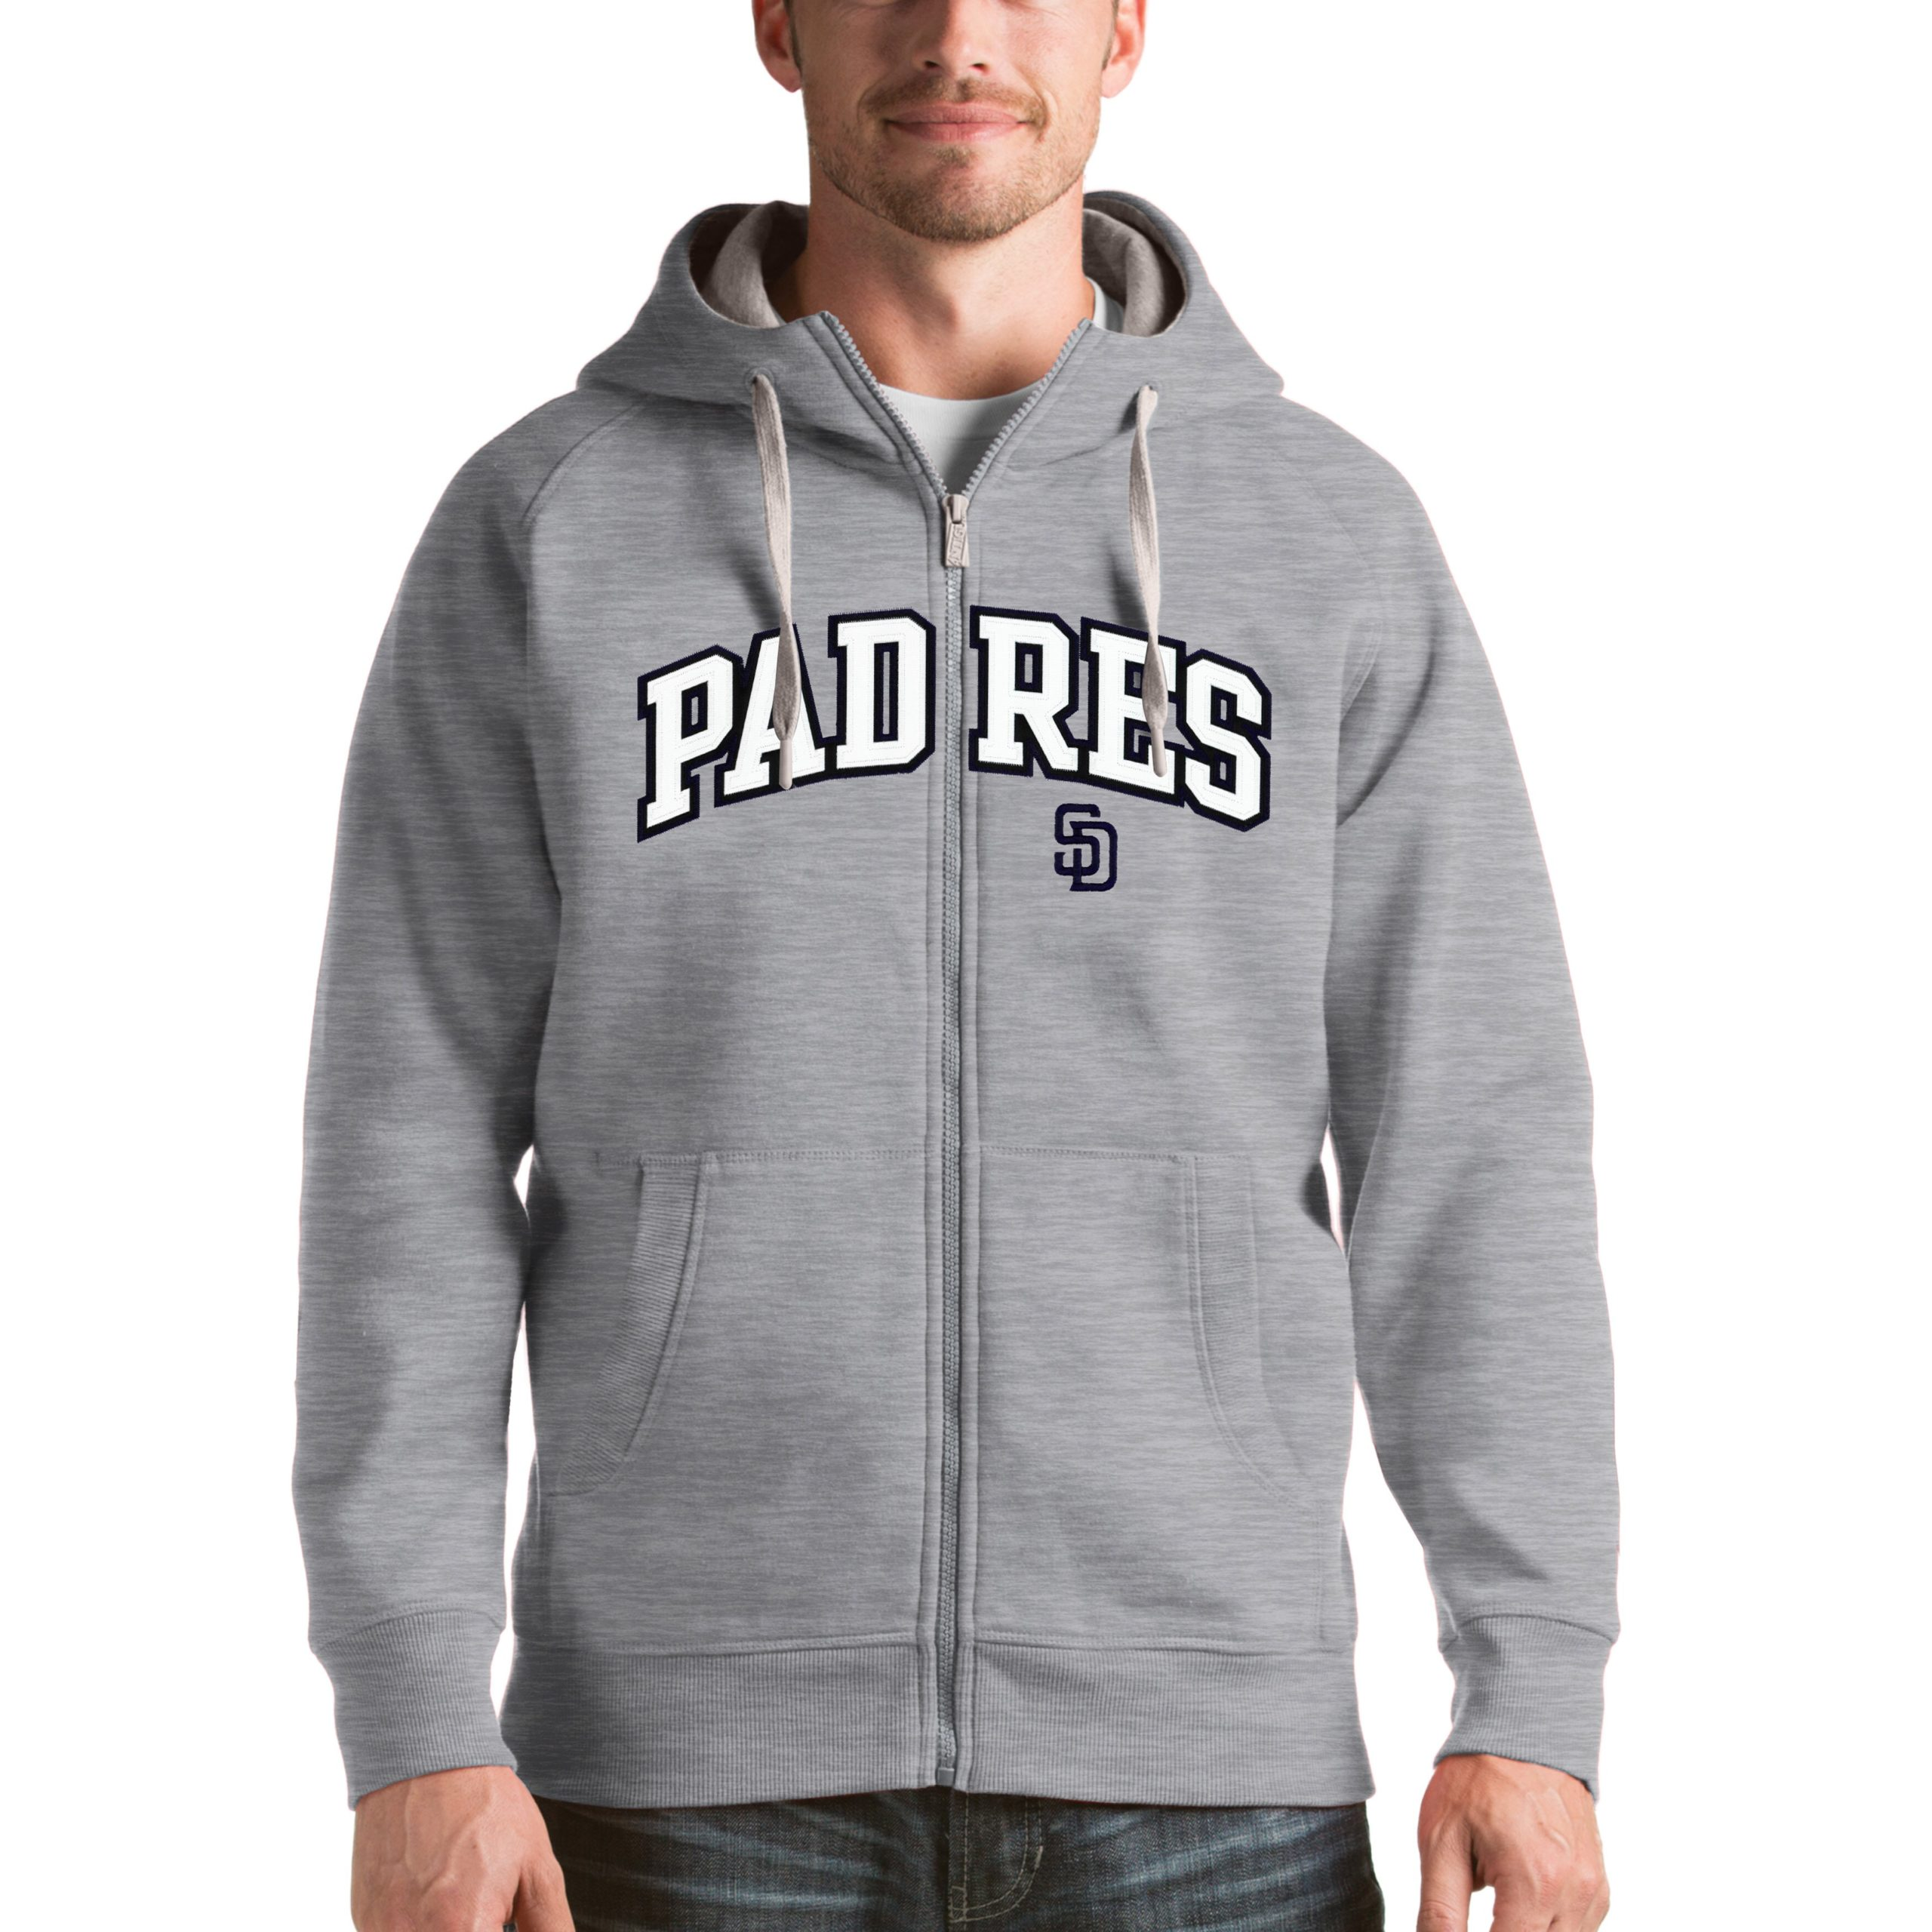 San Diego Padres Antigua Victory Full-Zip Hoodie - Heathered Gray